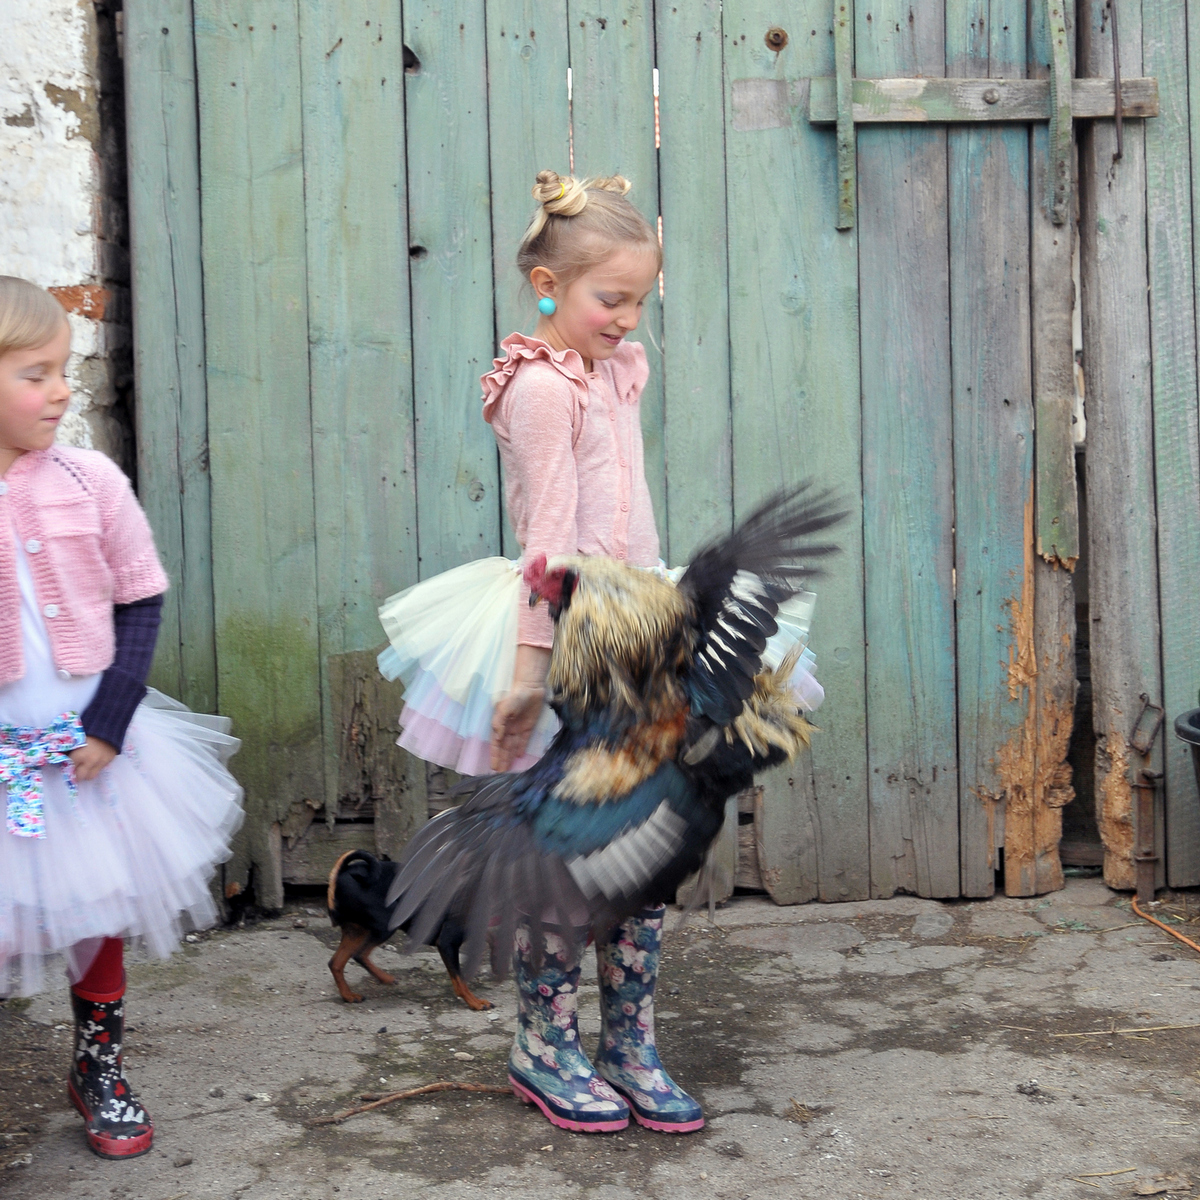 pentle dress and rooster